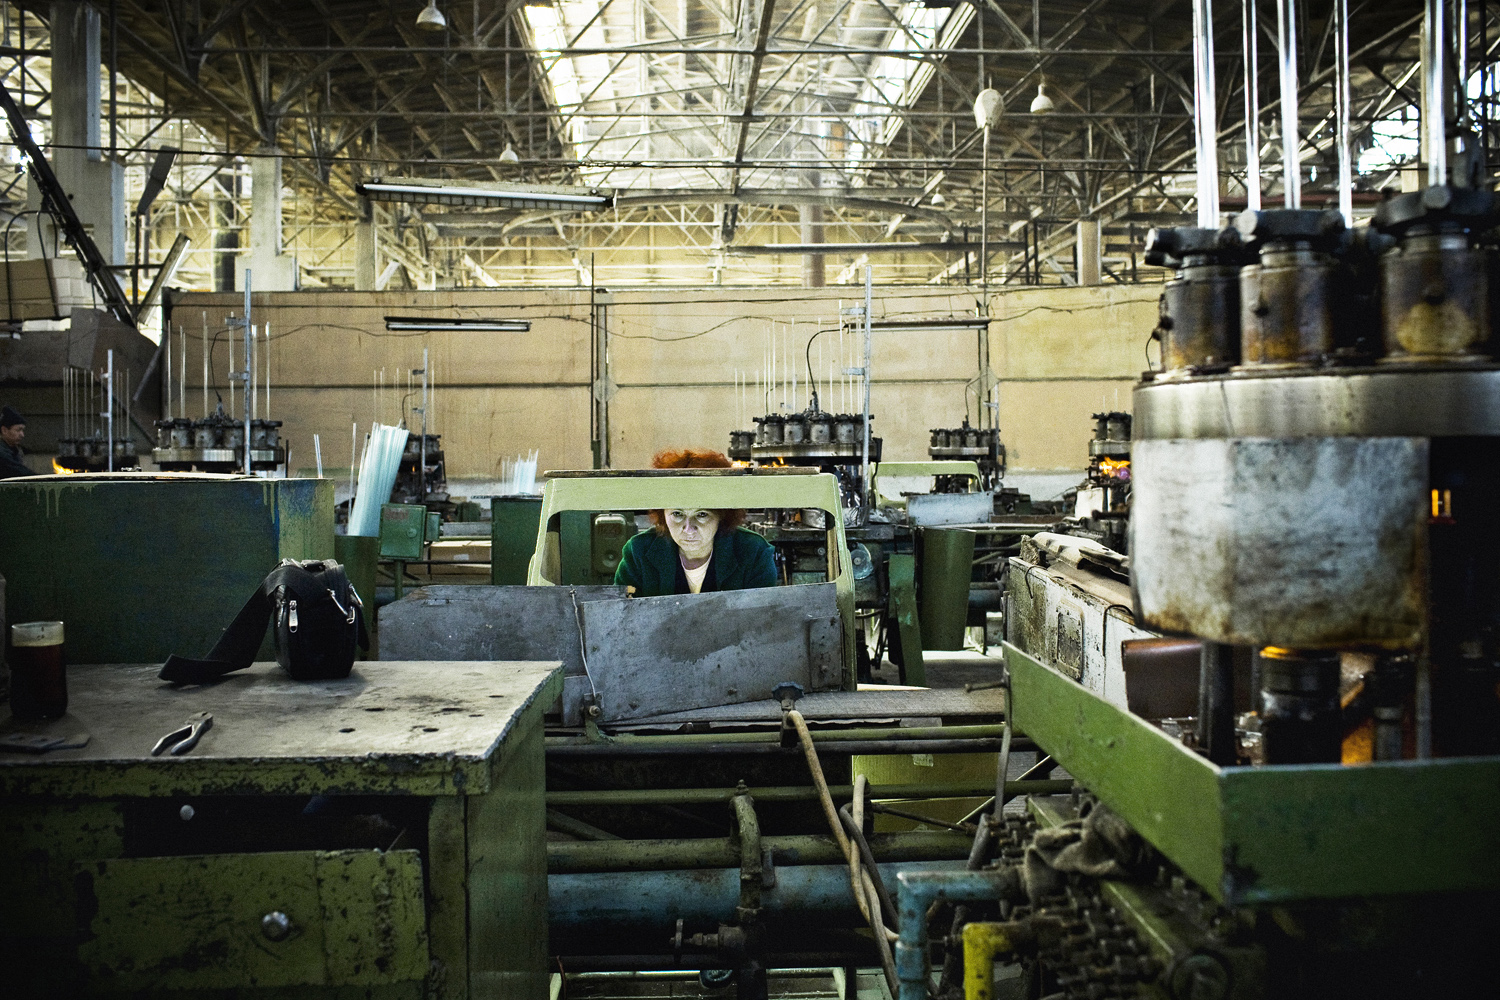 2008. A woman works at the Mailuu Suu factory in the Djalalabad region. During Soviet times, most of the electric lightbulbs in the USSR were made here. Today, only one third of the factory is still working and many workers haven't been paid for months.